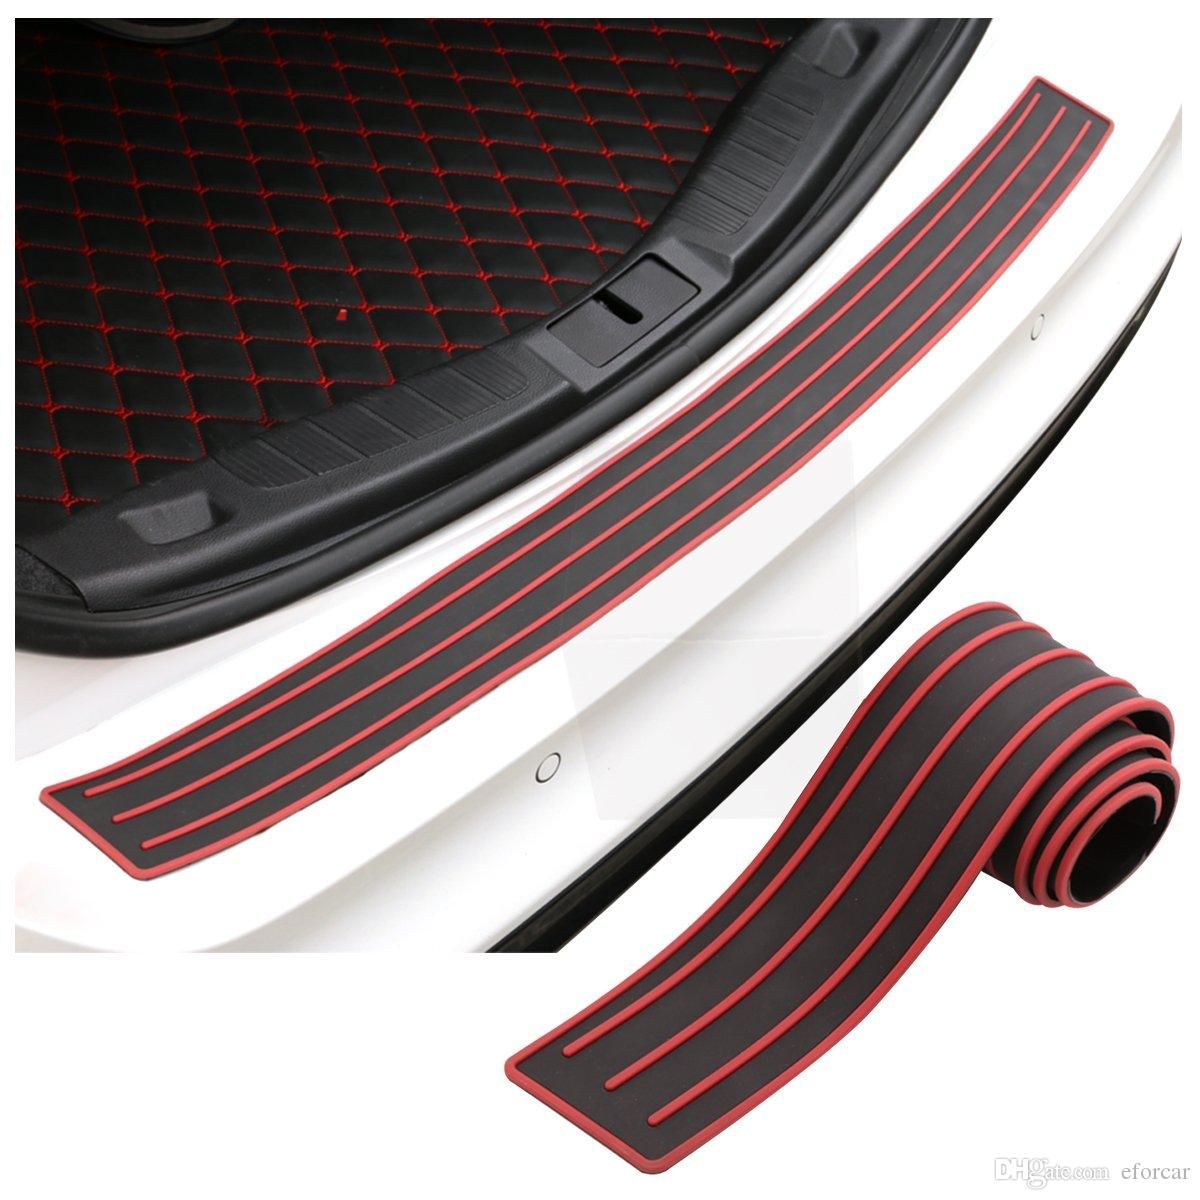 Universal Rubber Car Door Sill Guard Bumper Protector For Car Pickup Truck Anti Scratch Protection 35 Inch Cool Interior Car Accessories Cool Interior Truck ...  sc 1 st  DHgate.com & Universal Rubber Car Door Sill Guard Bumper Protector For Car Pickup ...